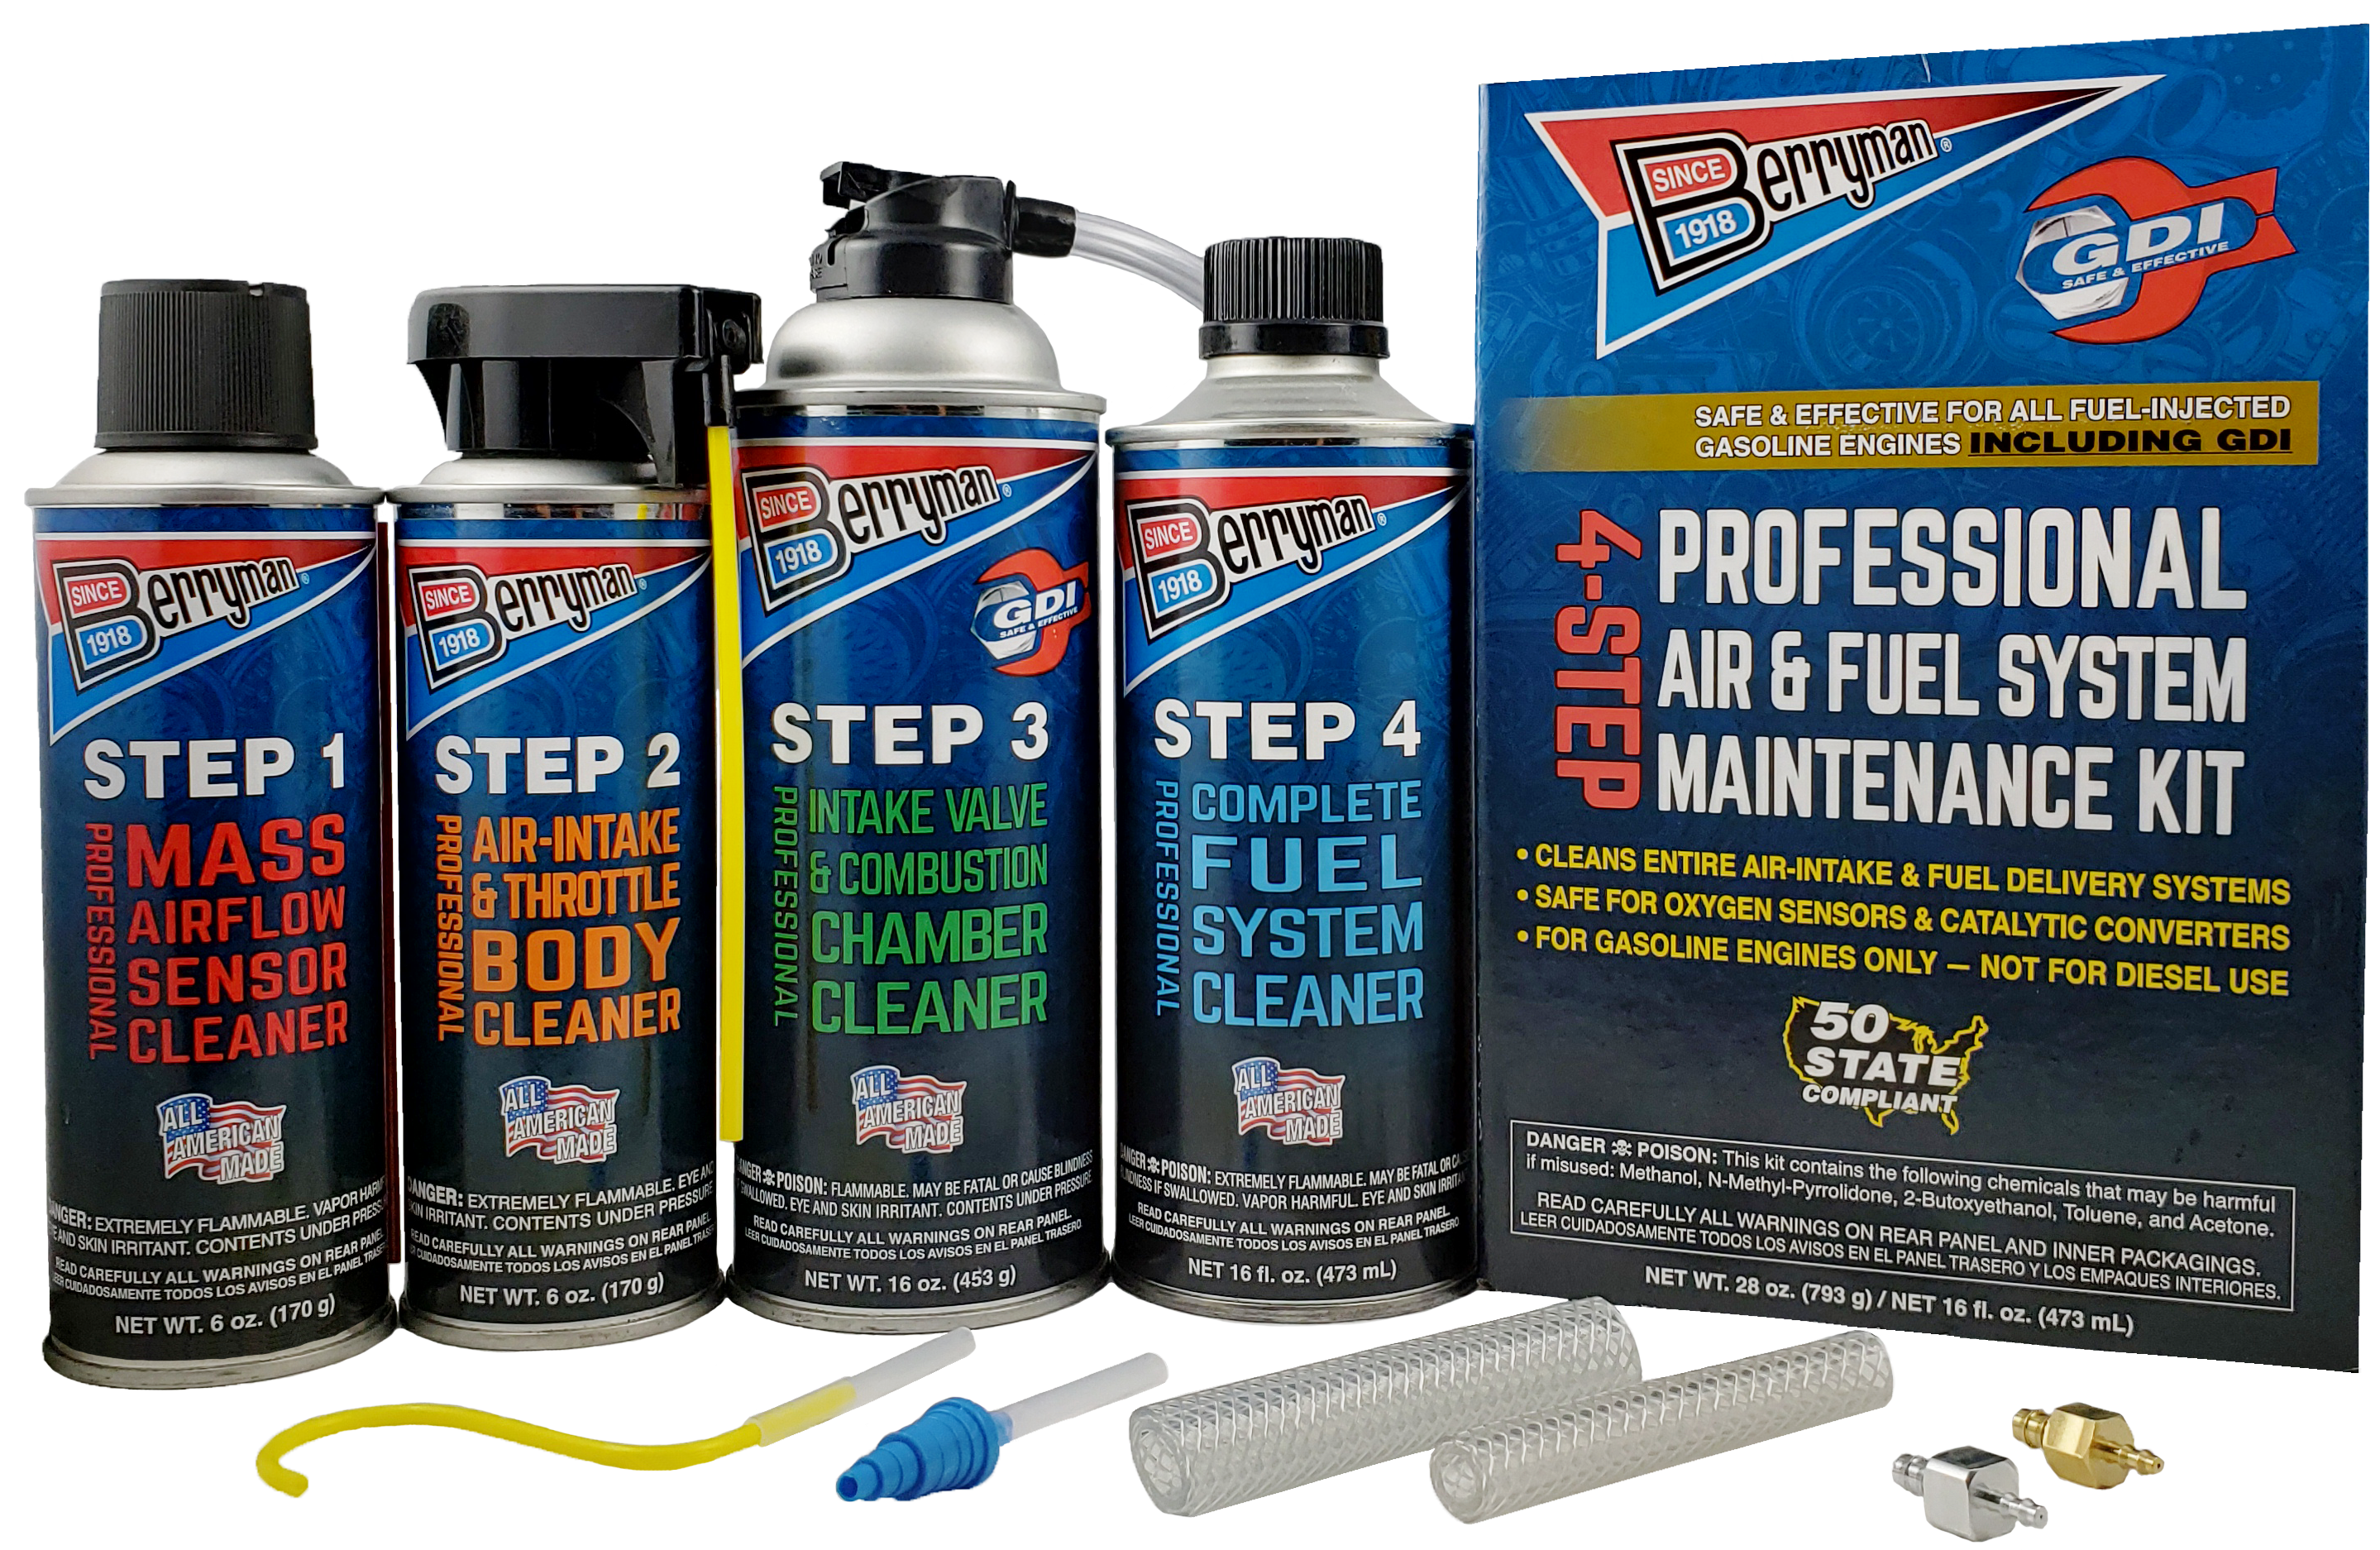 Berryman® 4-Step Professional Air & Fuel System Maintenance